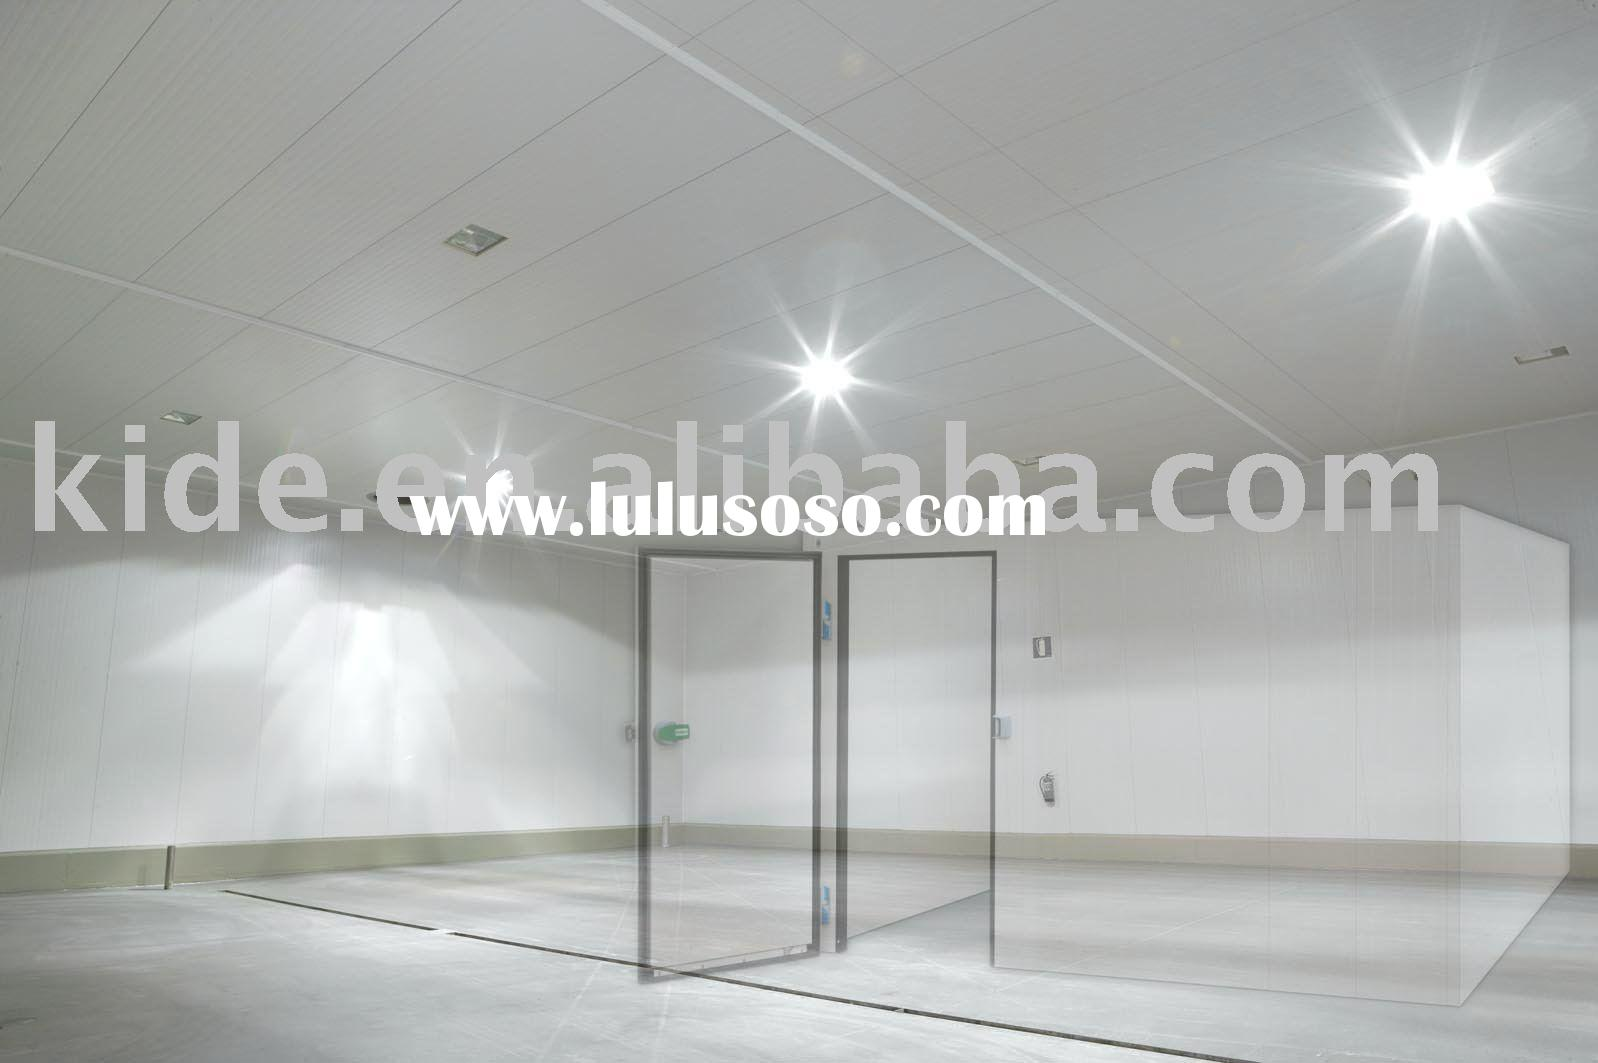 Walk-in freezer and cold room